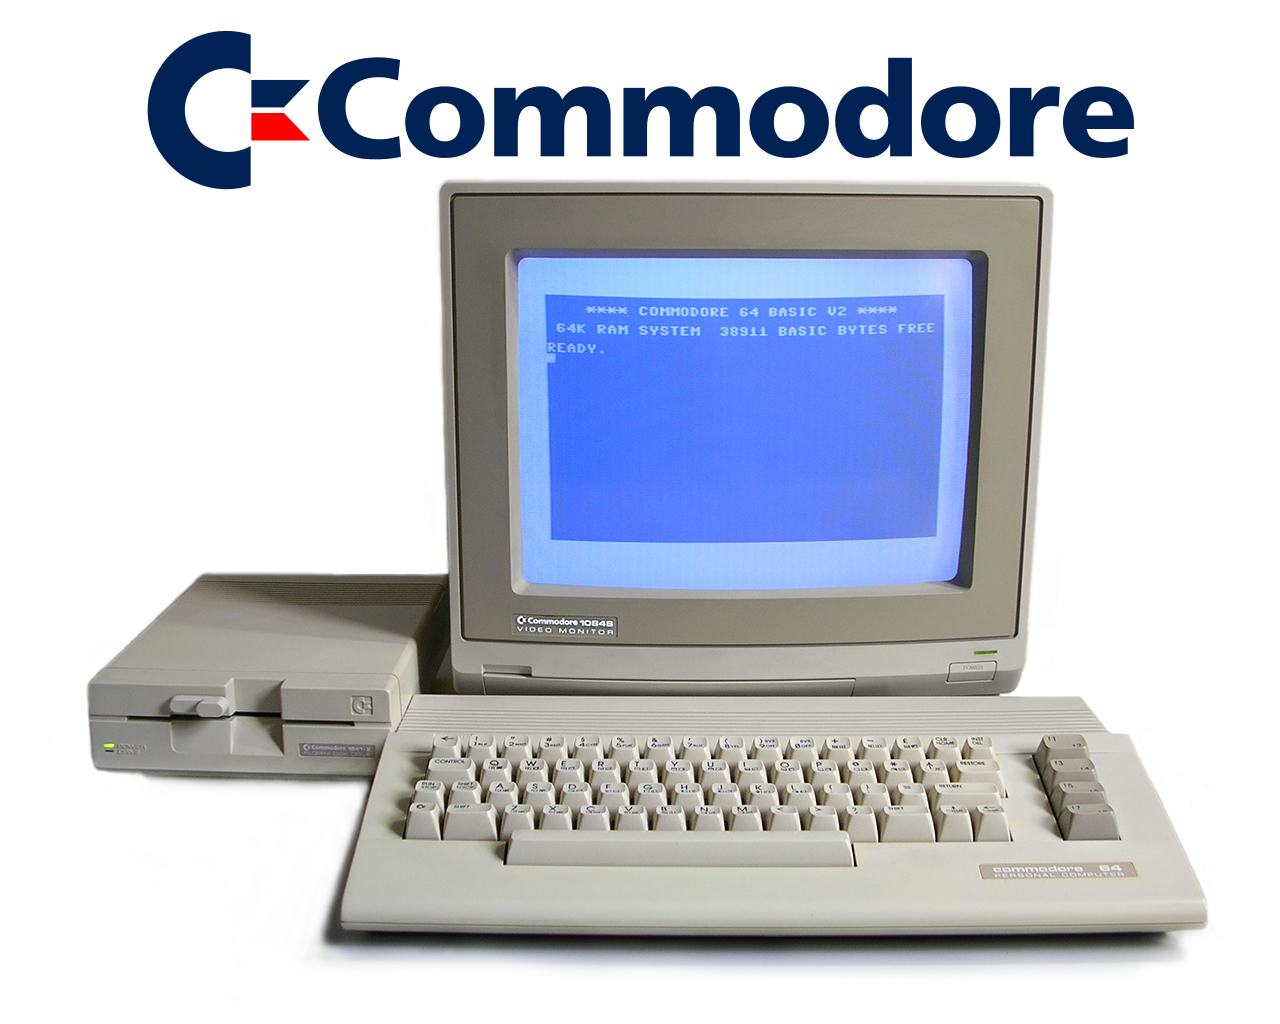 Commodore C64 PC